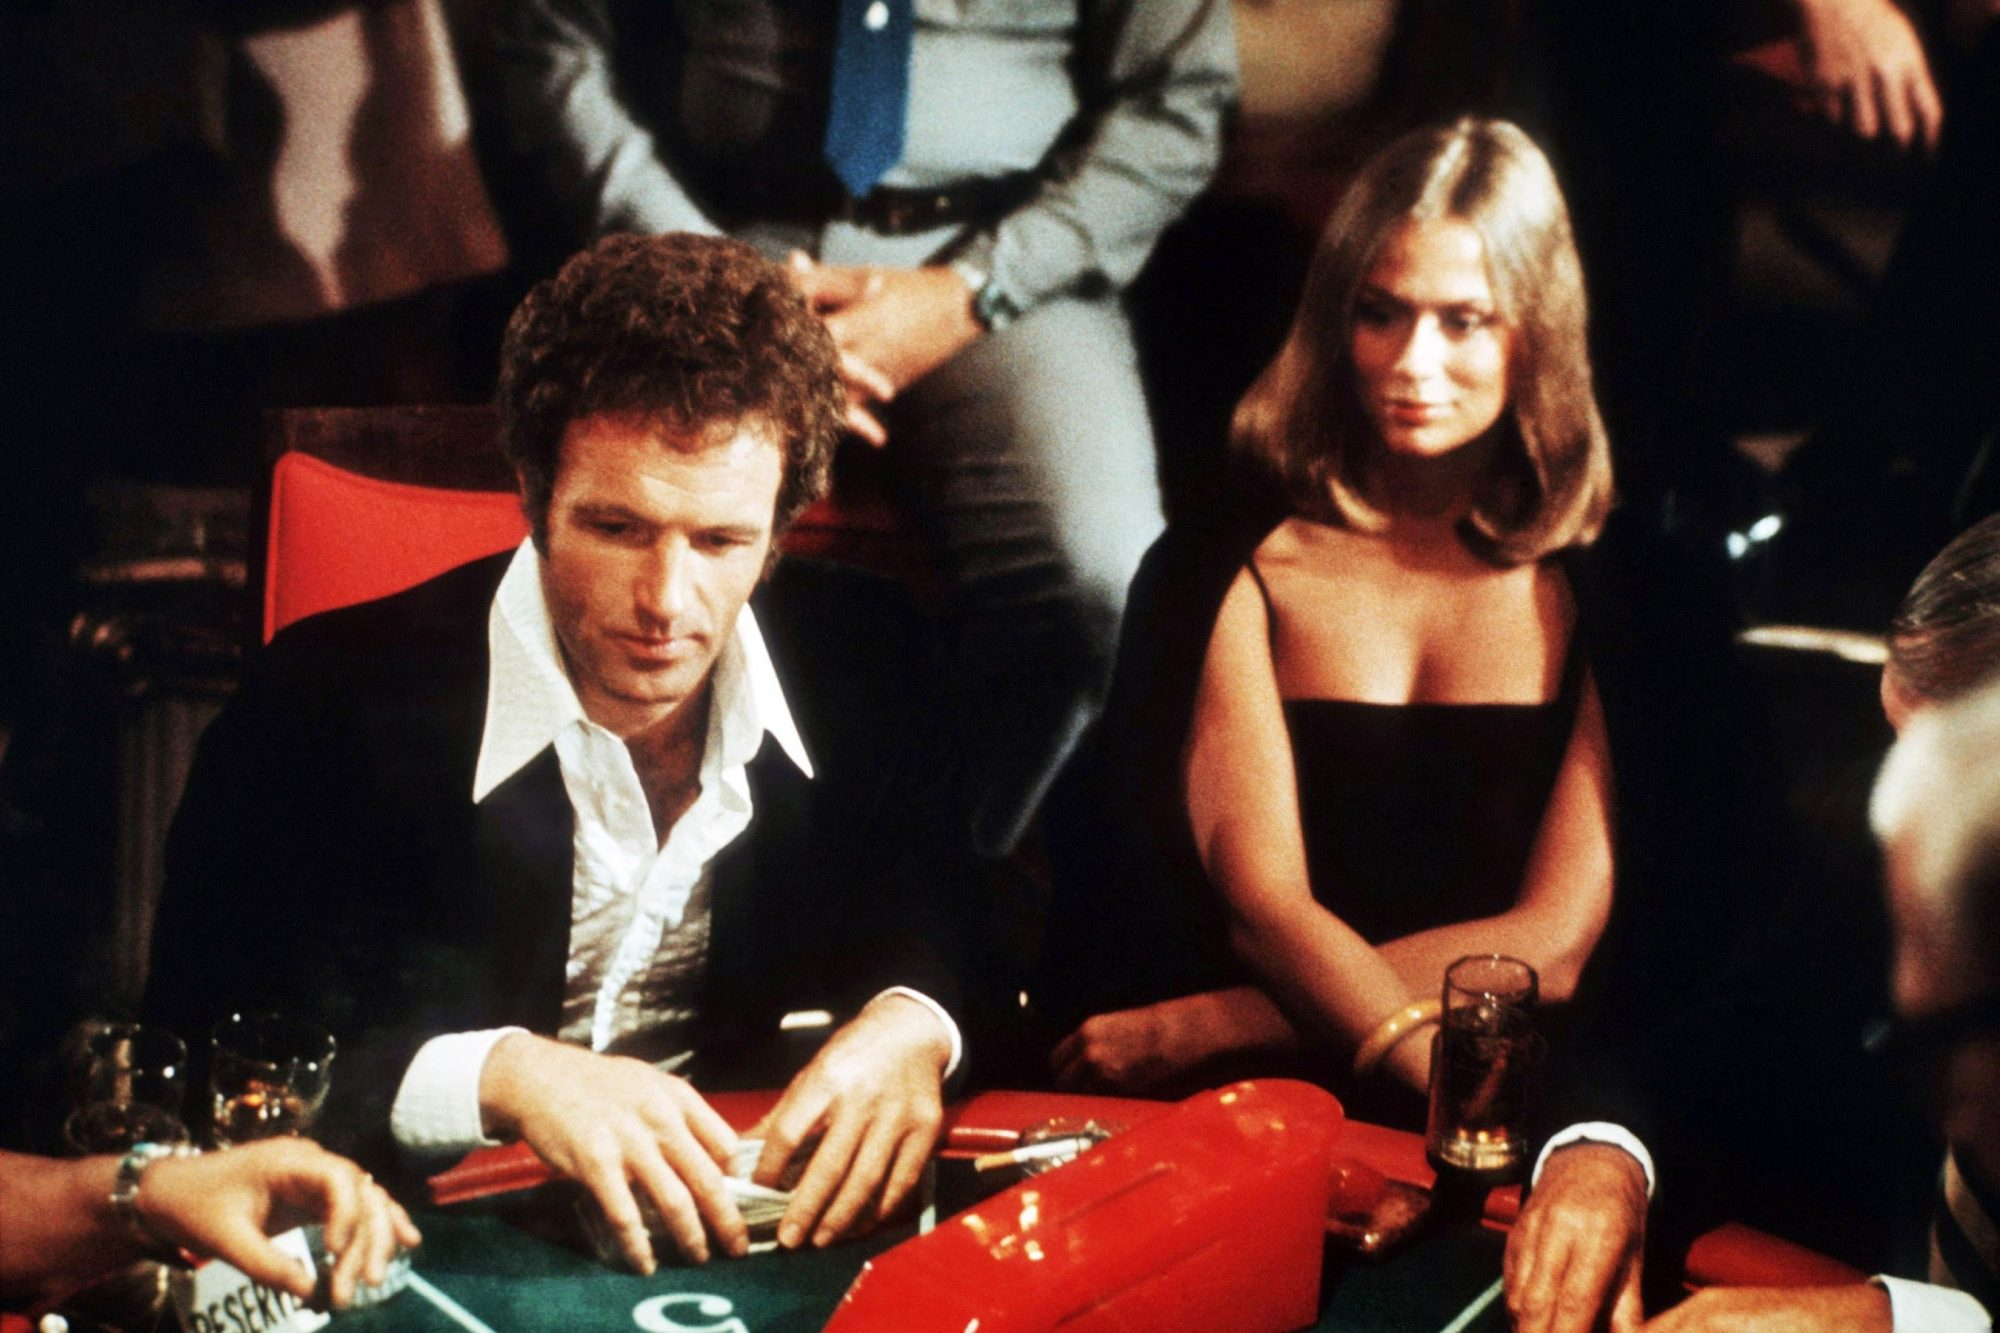 THE GAMBLER, from left: James Caan, Lauren Hutton, 1974 thegambler1974-fsct03(thegambler1974-fsct03)